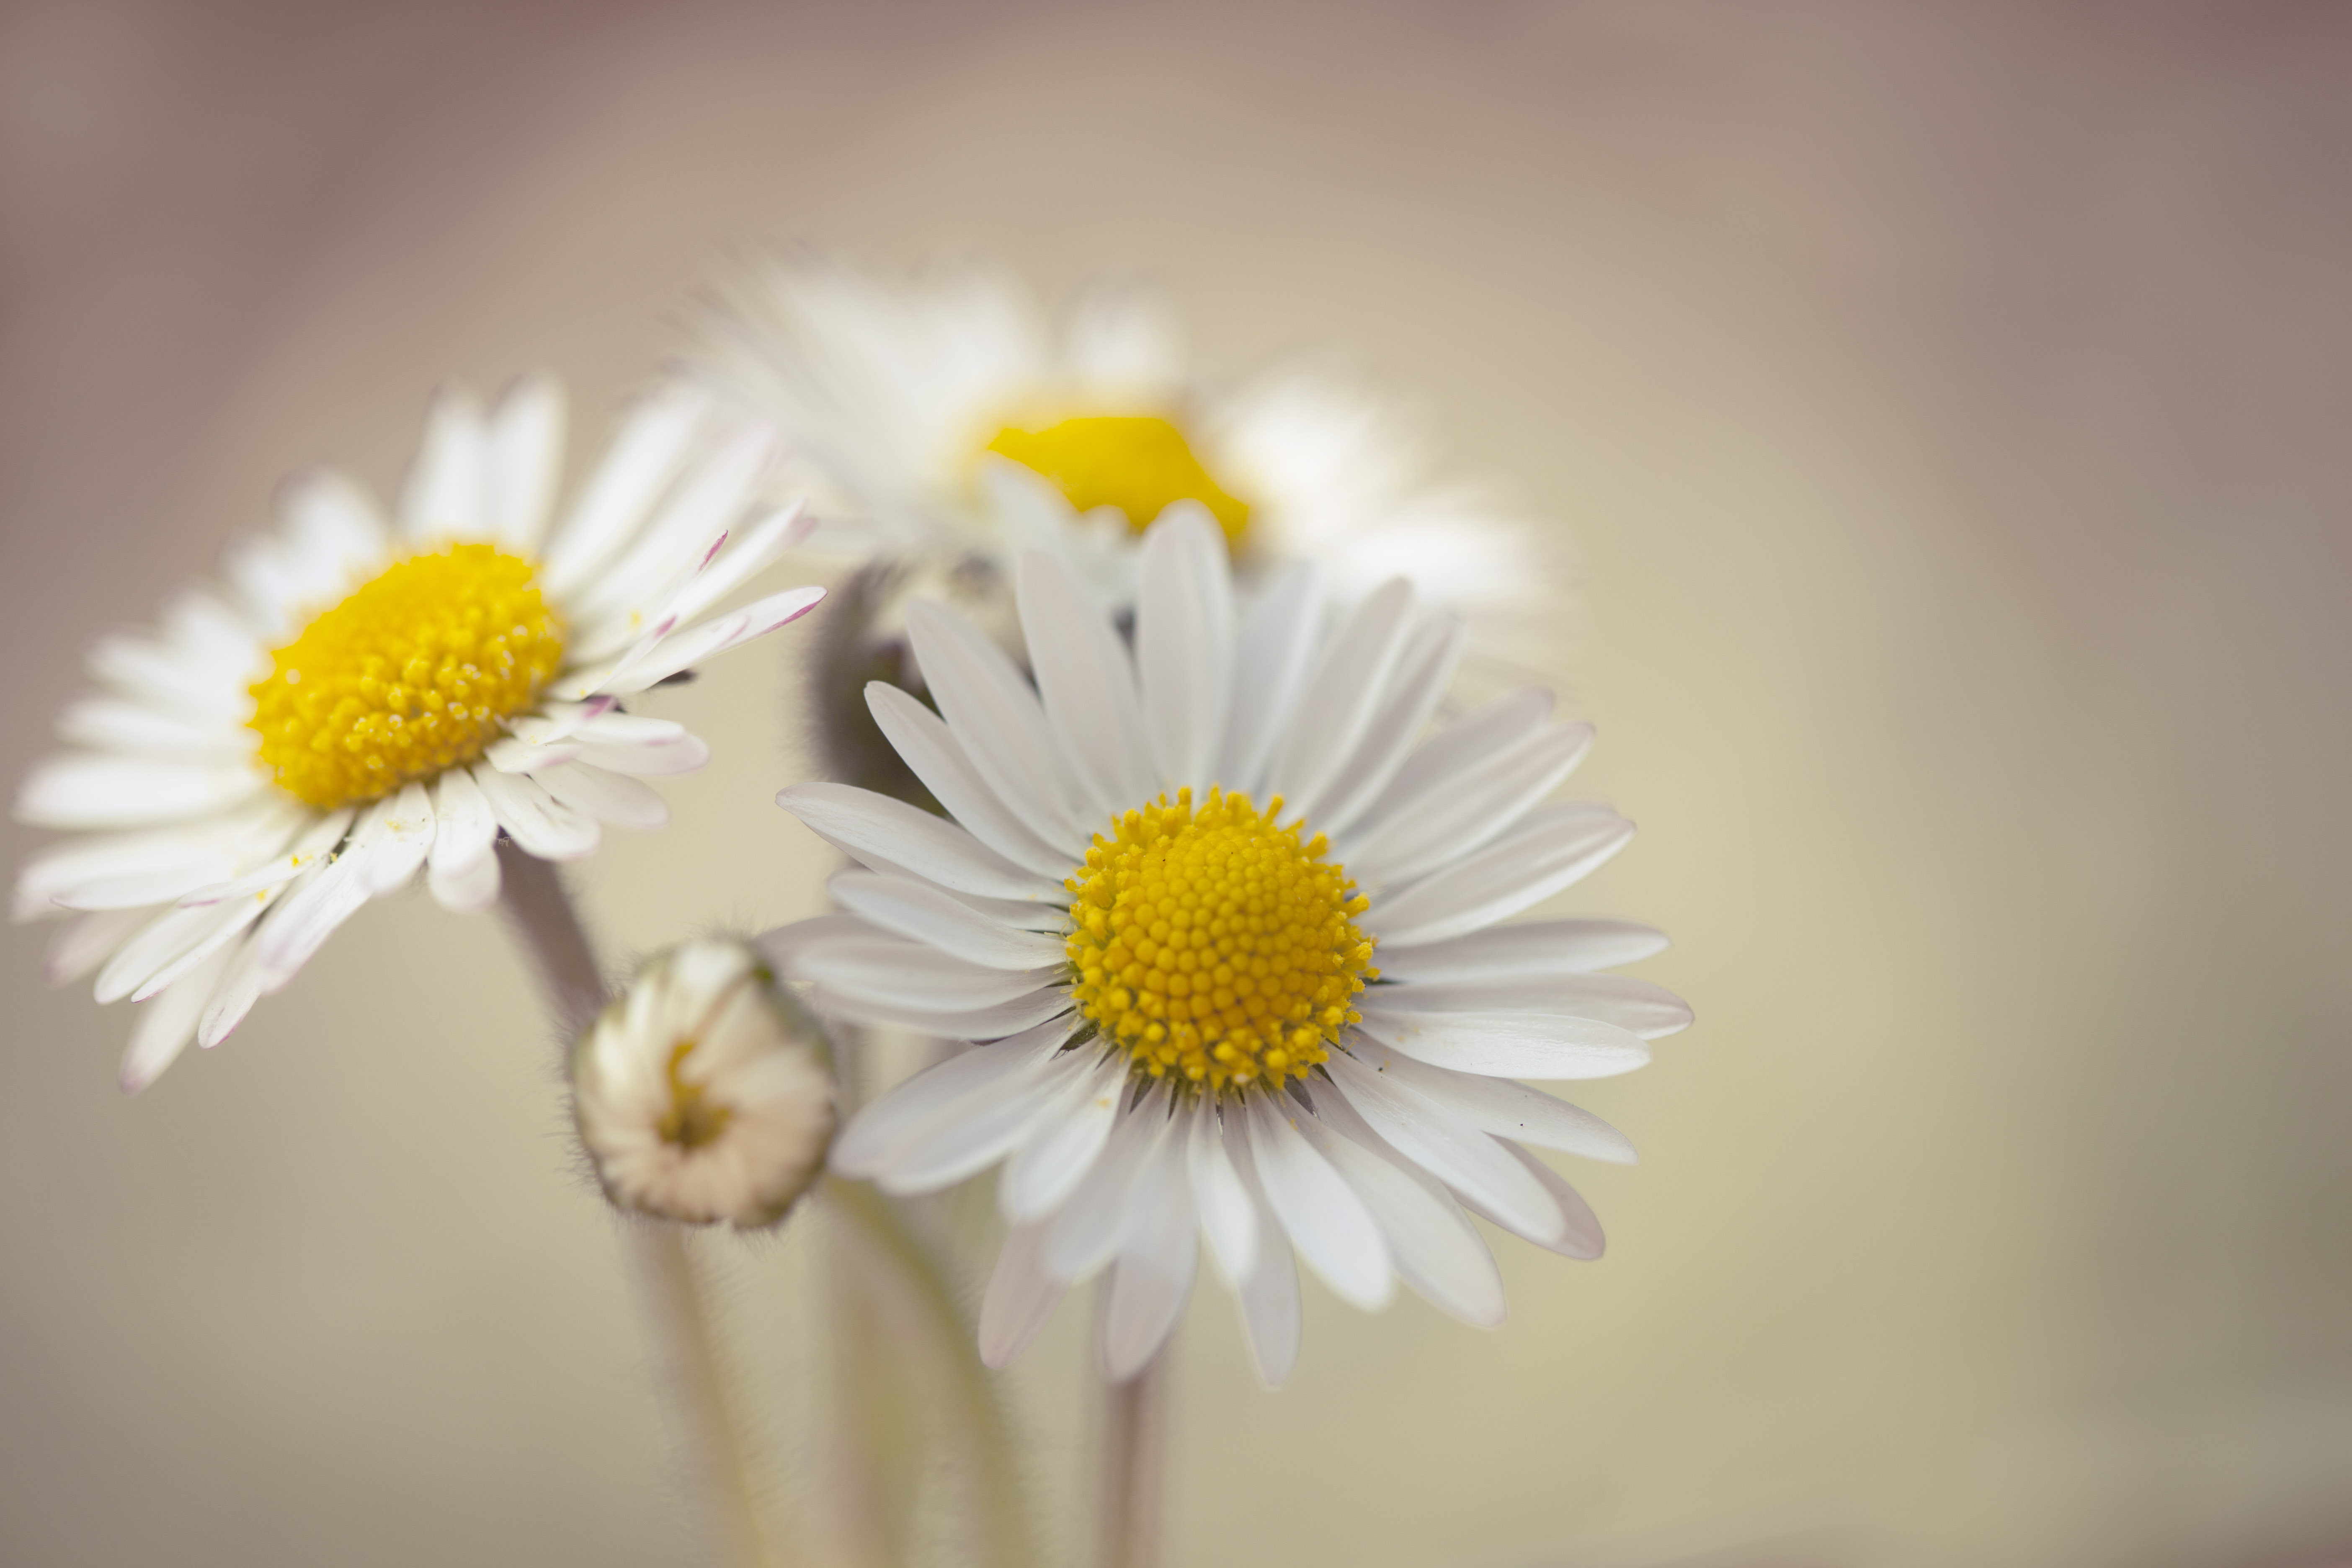 398 daisy hd wallpapers | background images - wallpaper abyss